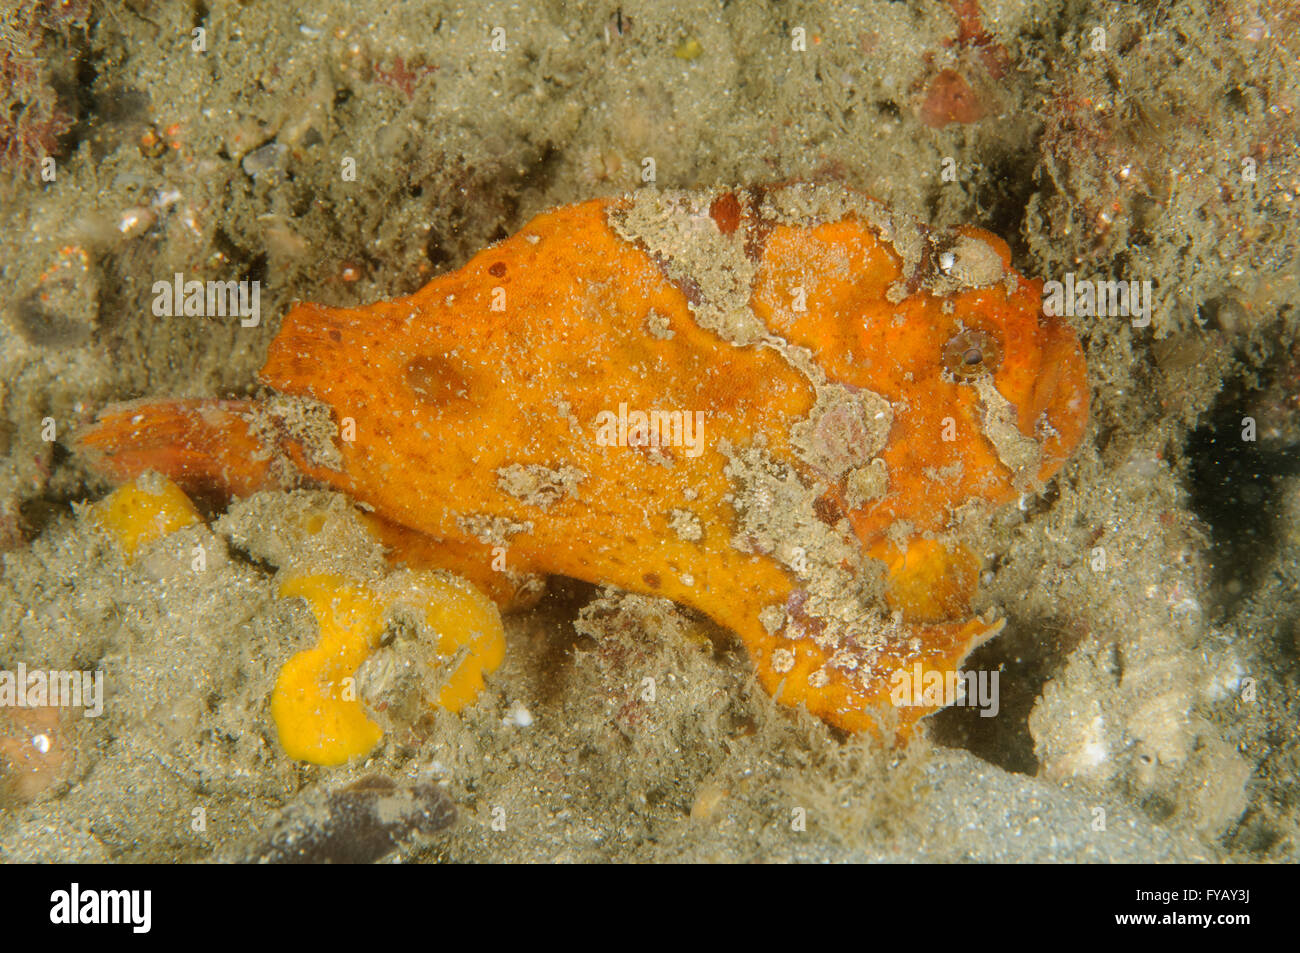 Freckled anglerfish, Antennatus coccineus, at Chowder Bay, Clifton Gardens, New South Wales, Australia. Depth: 3.9 - Stock Image